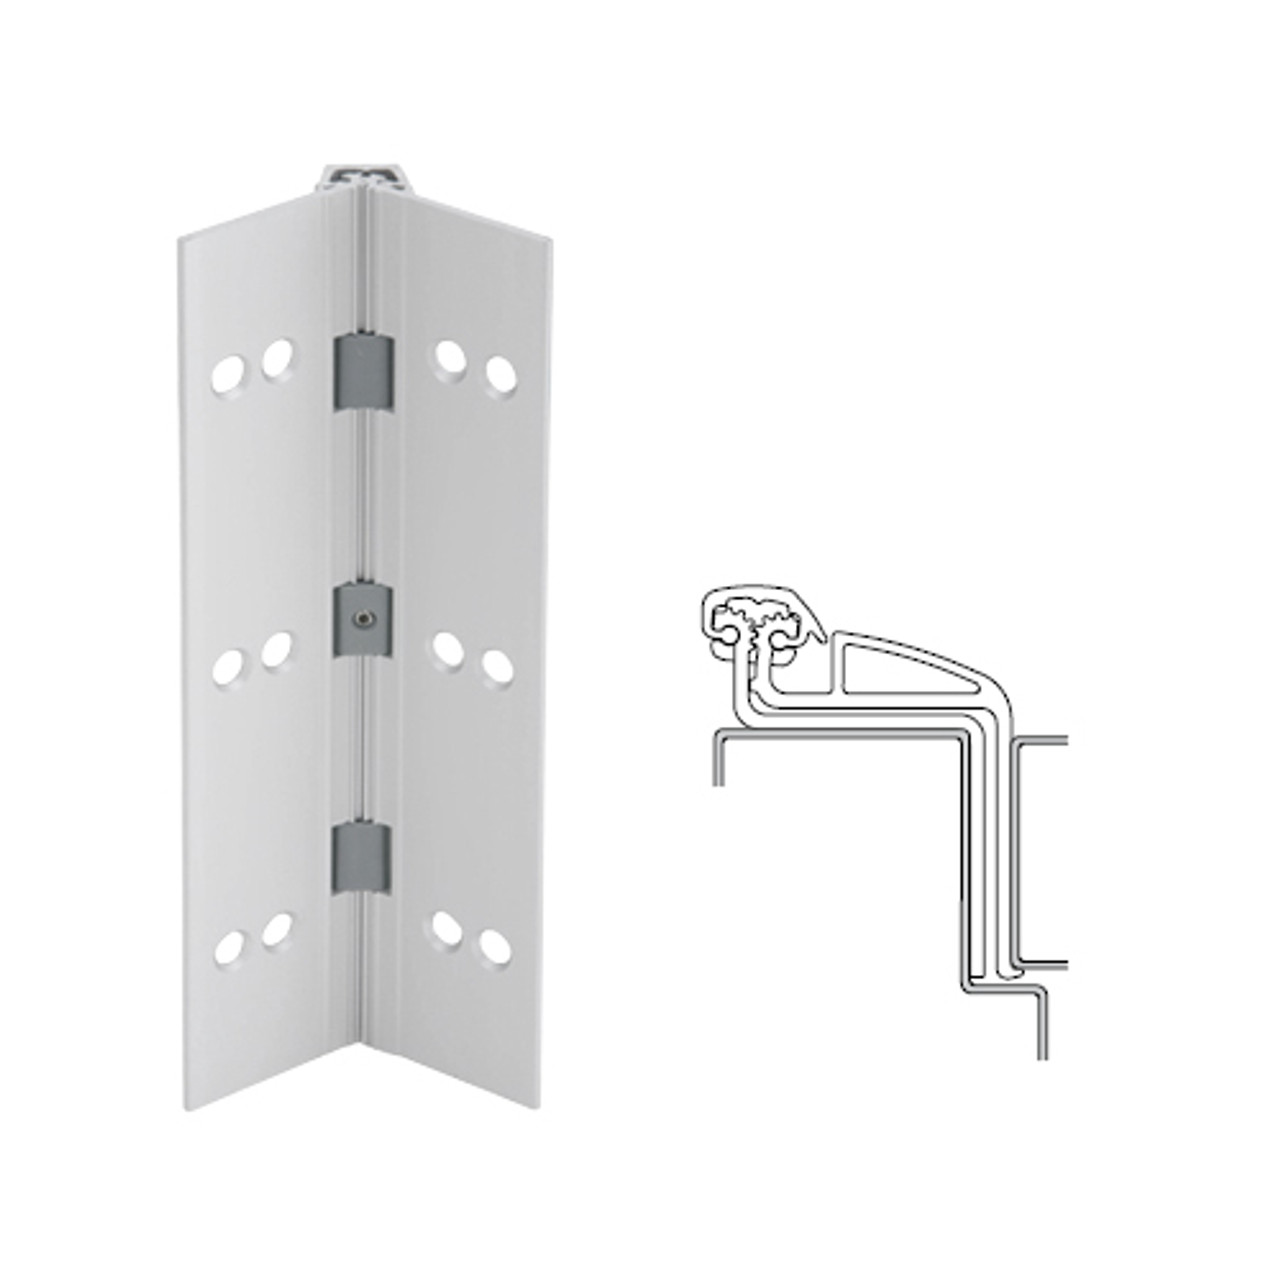 041XY-US28-83-TF IVES Full Mortise Continuous Geared Hinges with Thread Forming Screws in Satin Aluminum